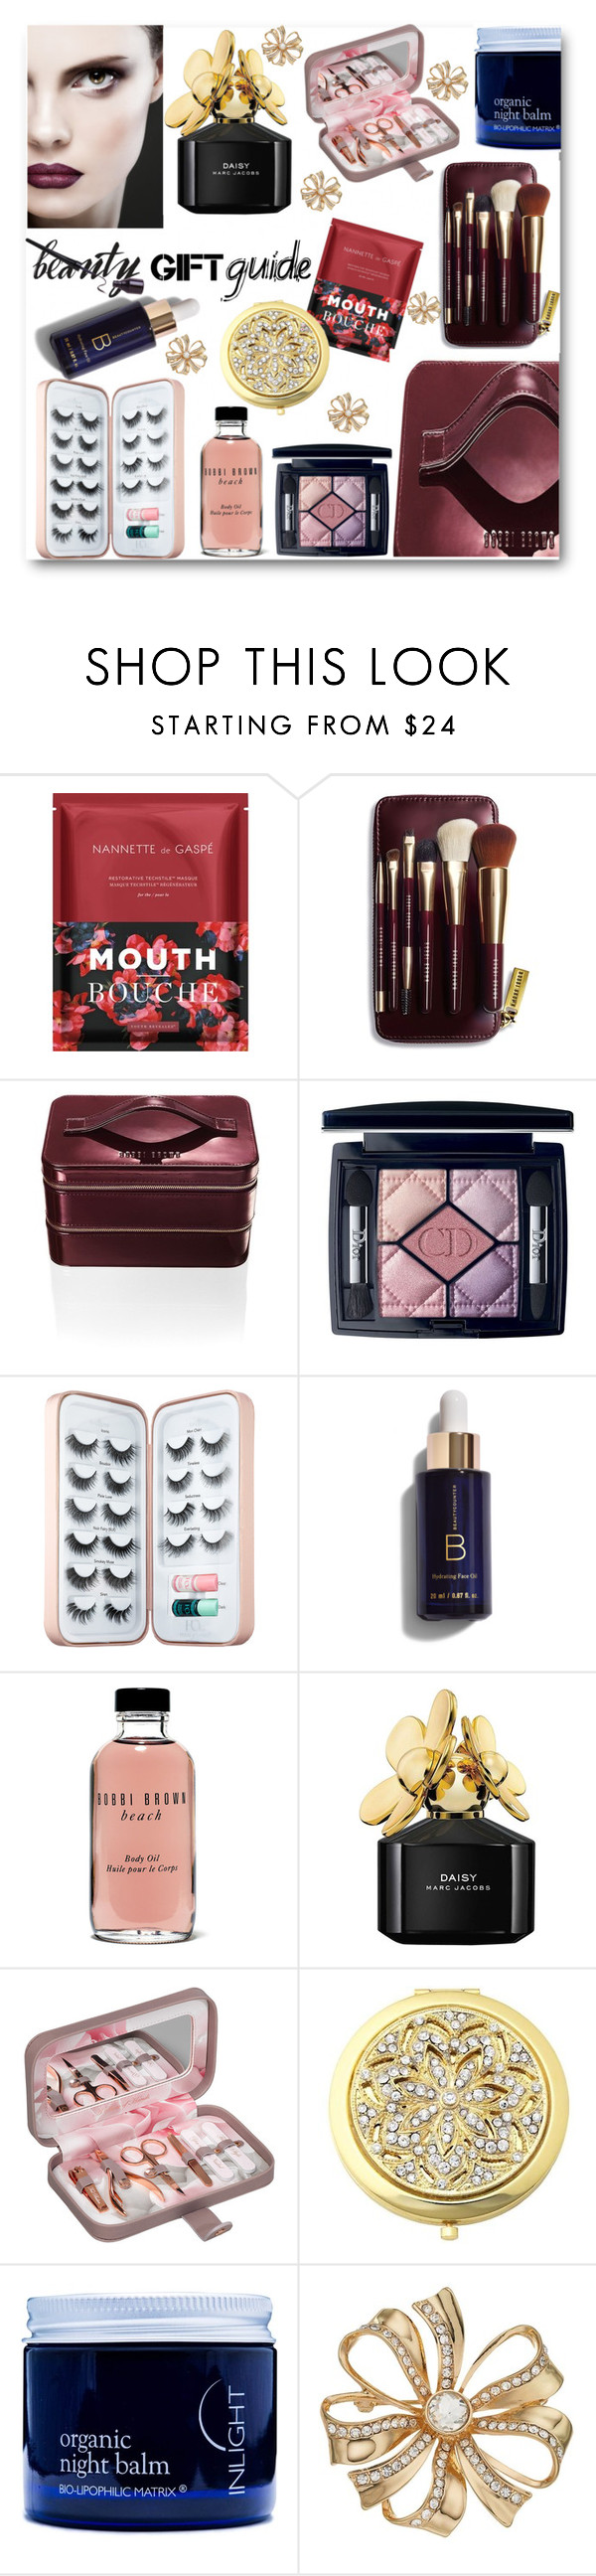 """""""I bought 2-  1 for me 1 for you"""" by looking-for-a-place-to-happen ❤ liked on Polyvore featuring beauty, Nannette de Gaspé, Bobbi Brown Cosmetics, Christian Dior, Sephora Collection, Marc Jacobs, Ted Baker, Frontgate, Inlight Skincare and Dana Buchman"""